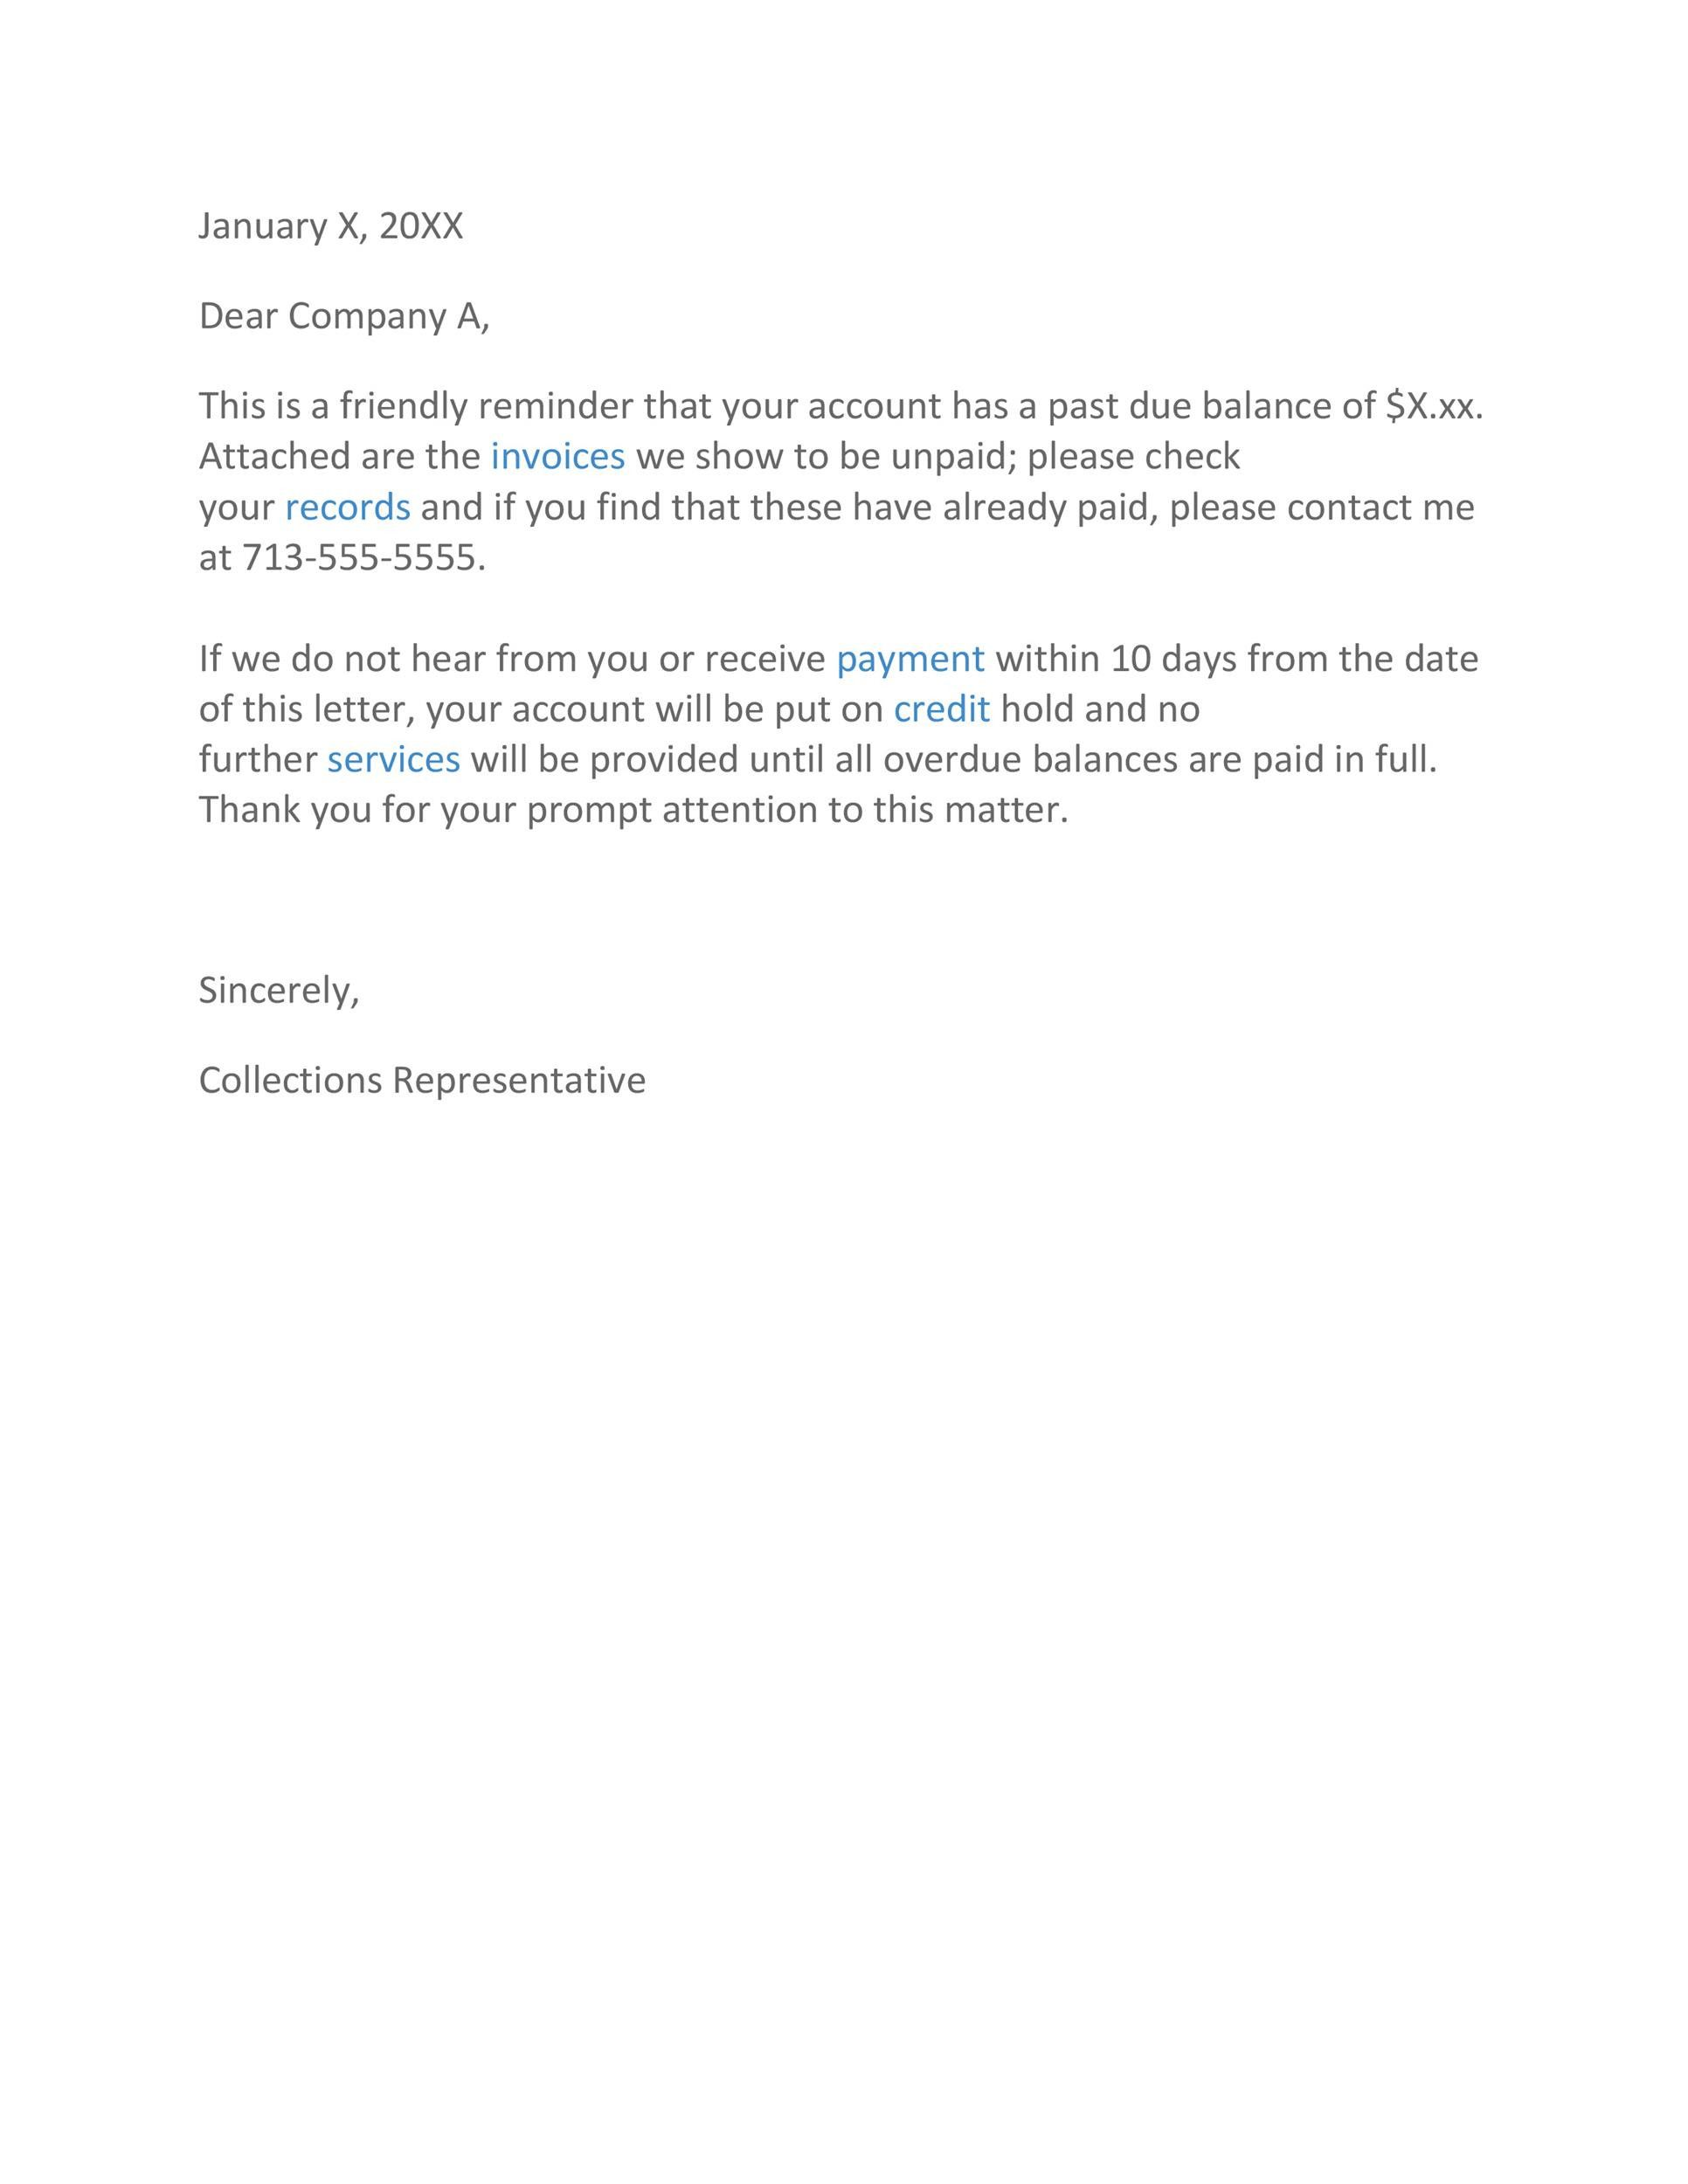 Past Due Invoice Letter   Letter templates free, Collection letter ...